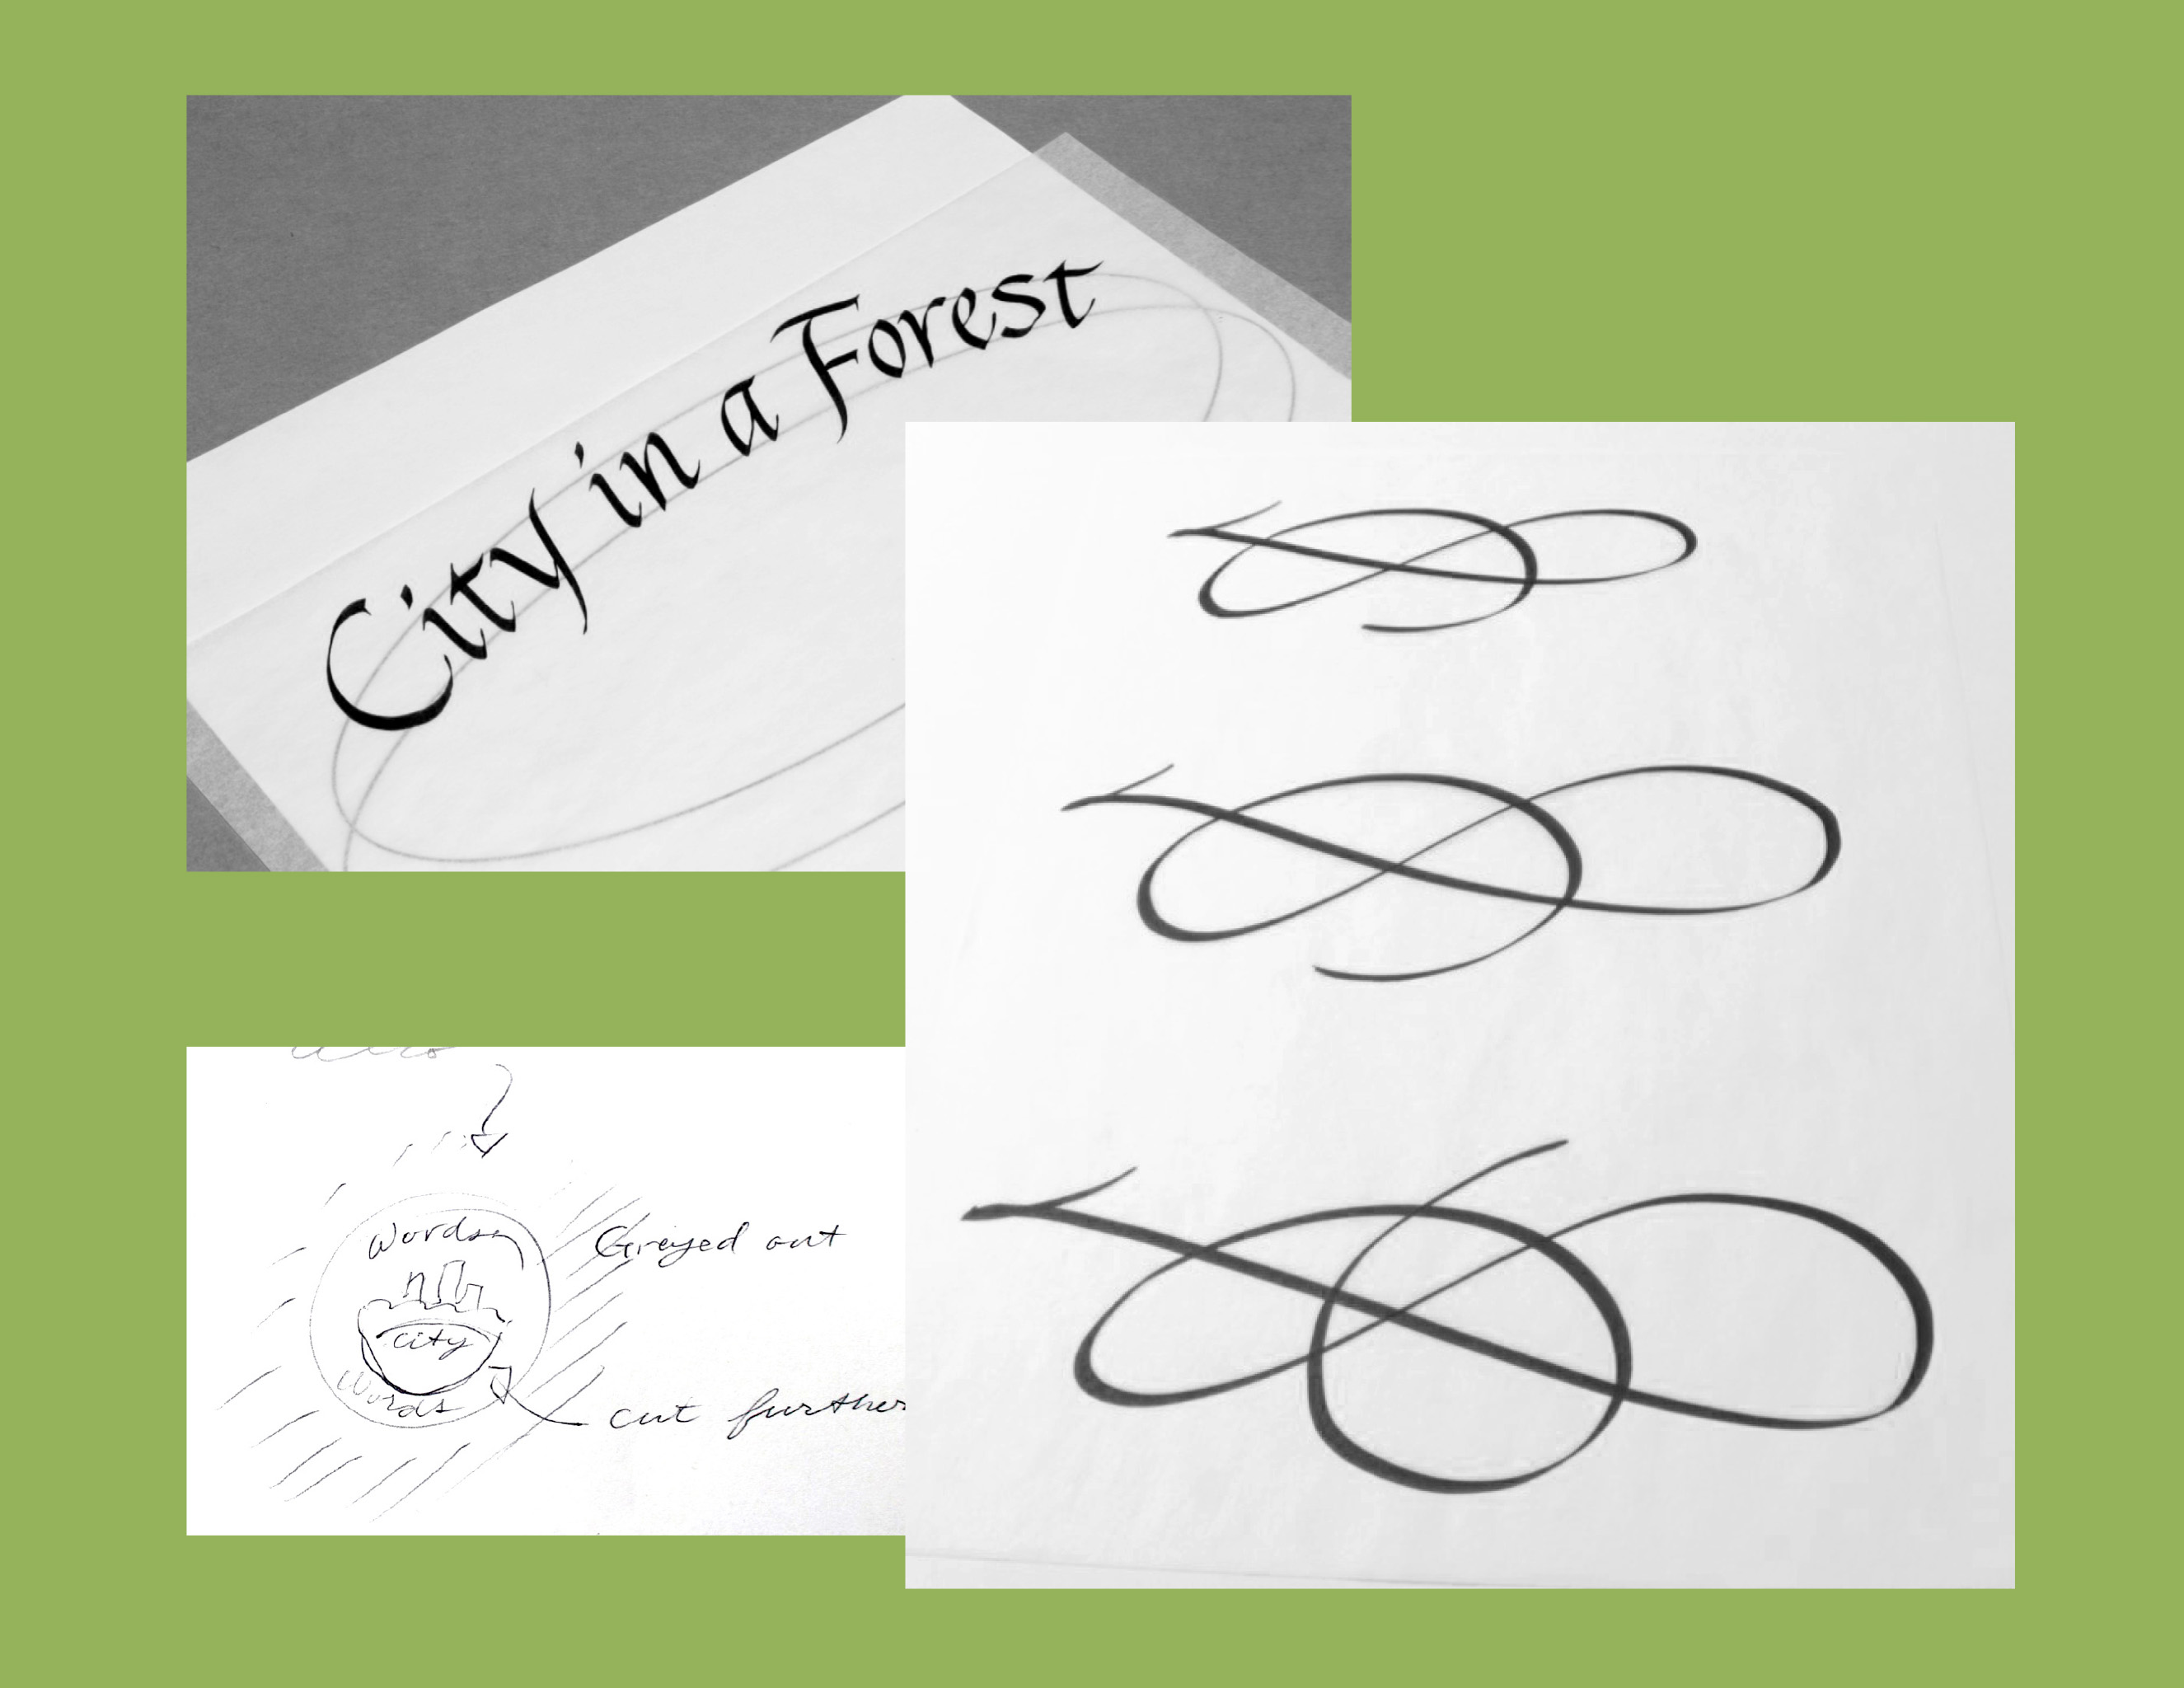 Practice sketches for the creation of the City in a Forest Event Logo